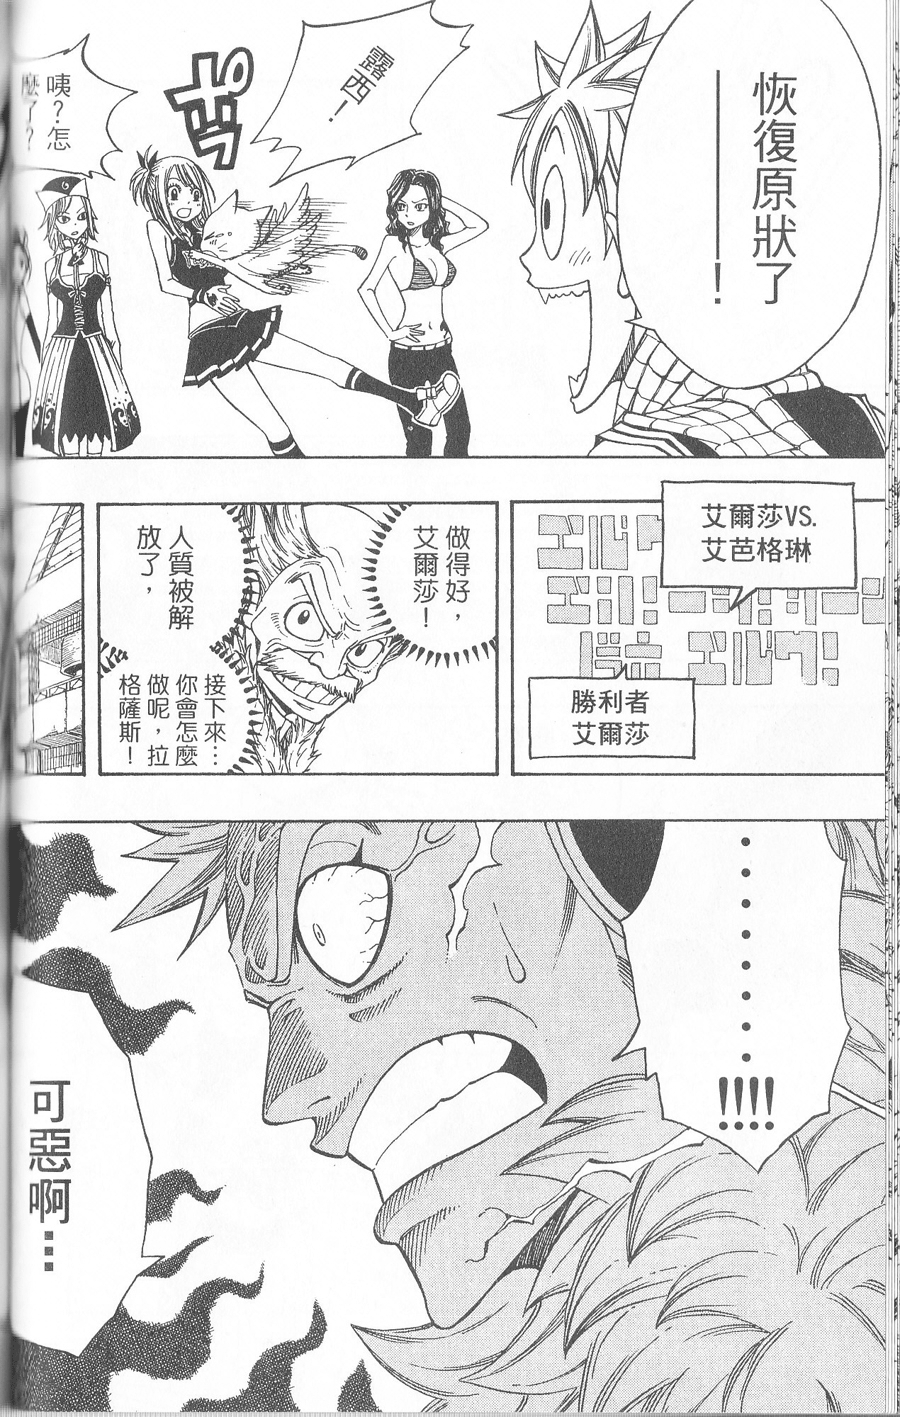 fairytail_112_13